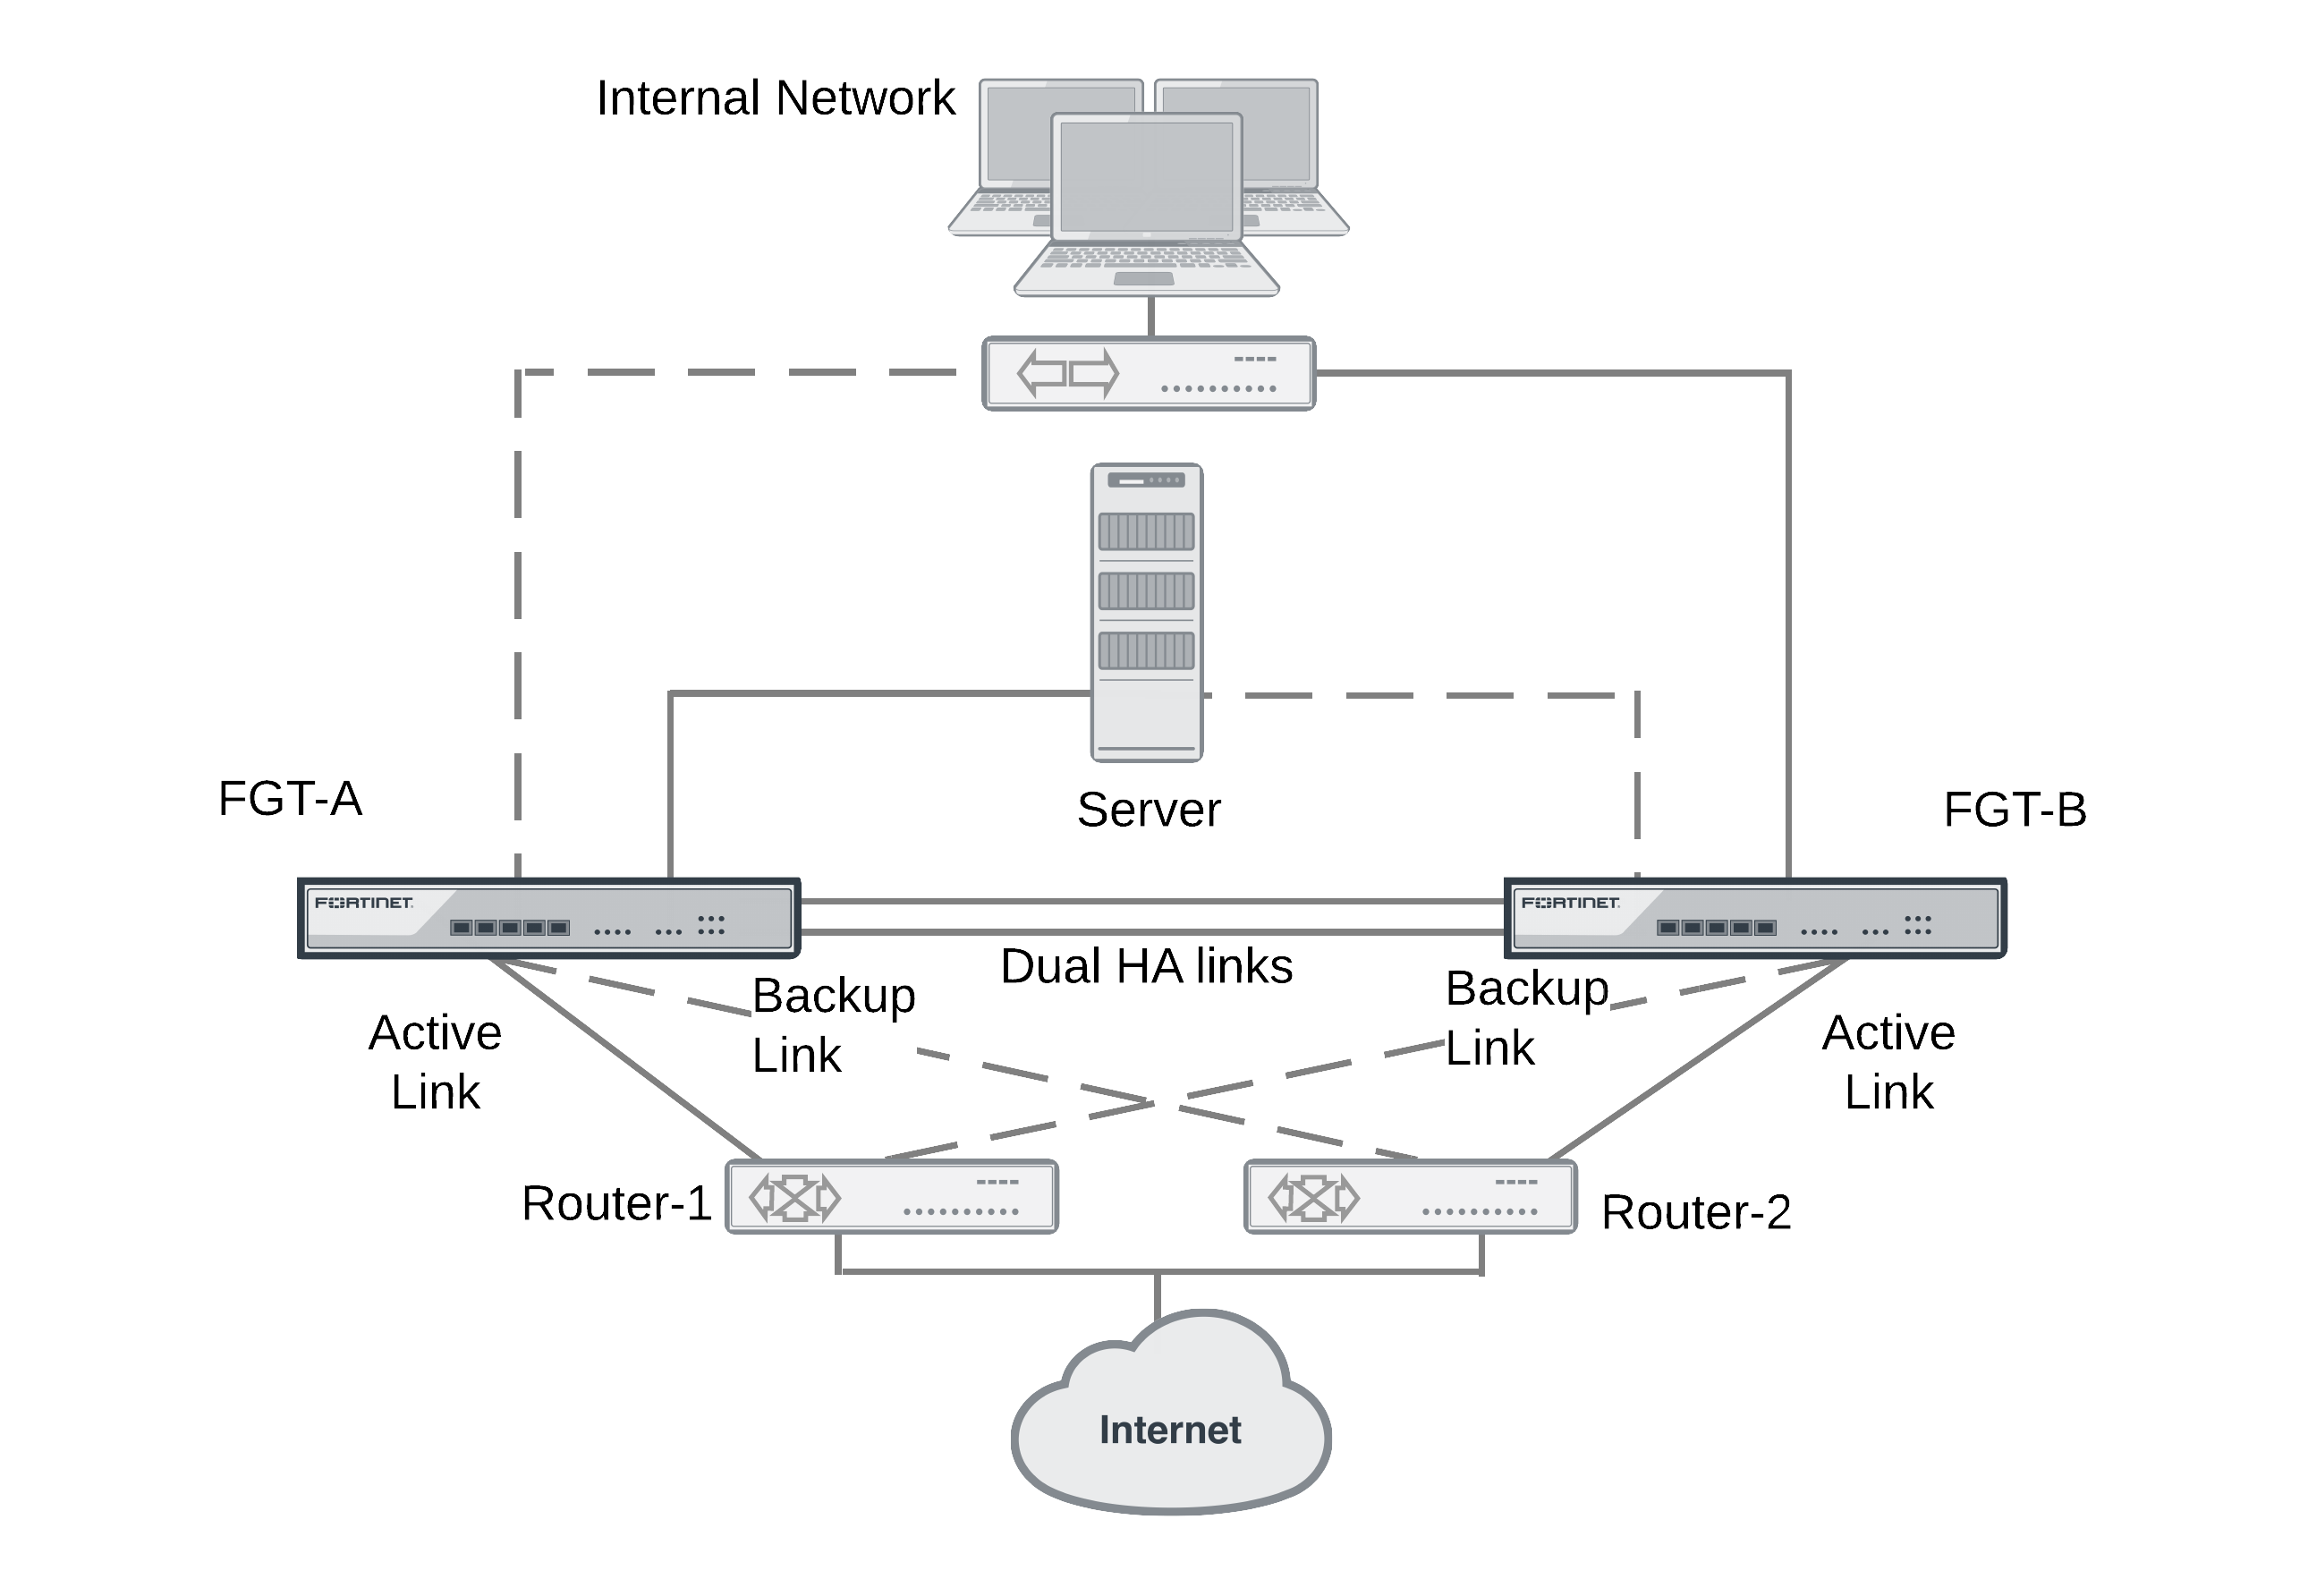 Solving the High Availability problem